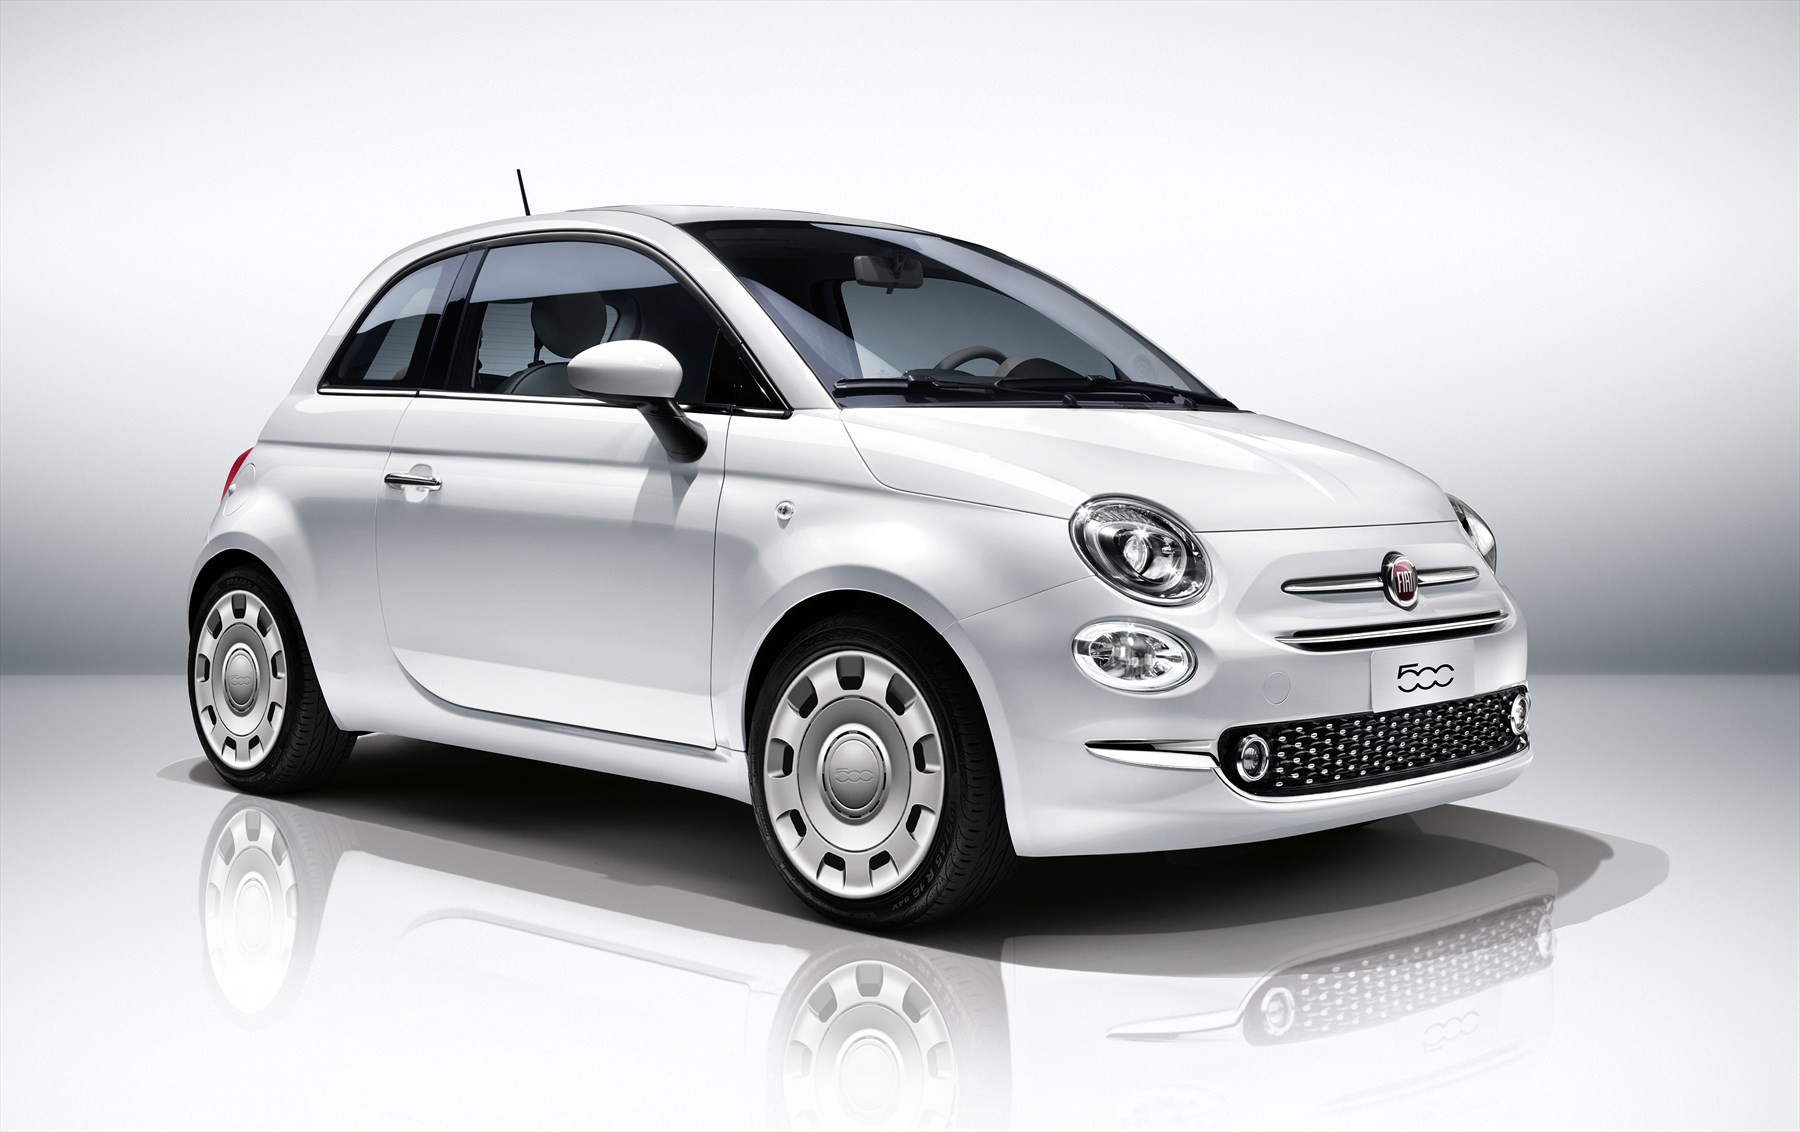 new fiat 500 hits south african shores barloworld motor retail. Black Bedroom Furniture Sets. Home Design Ideas